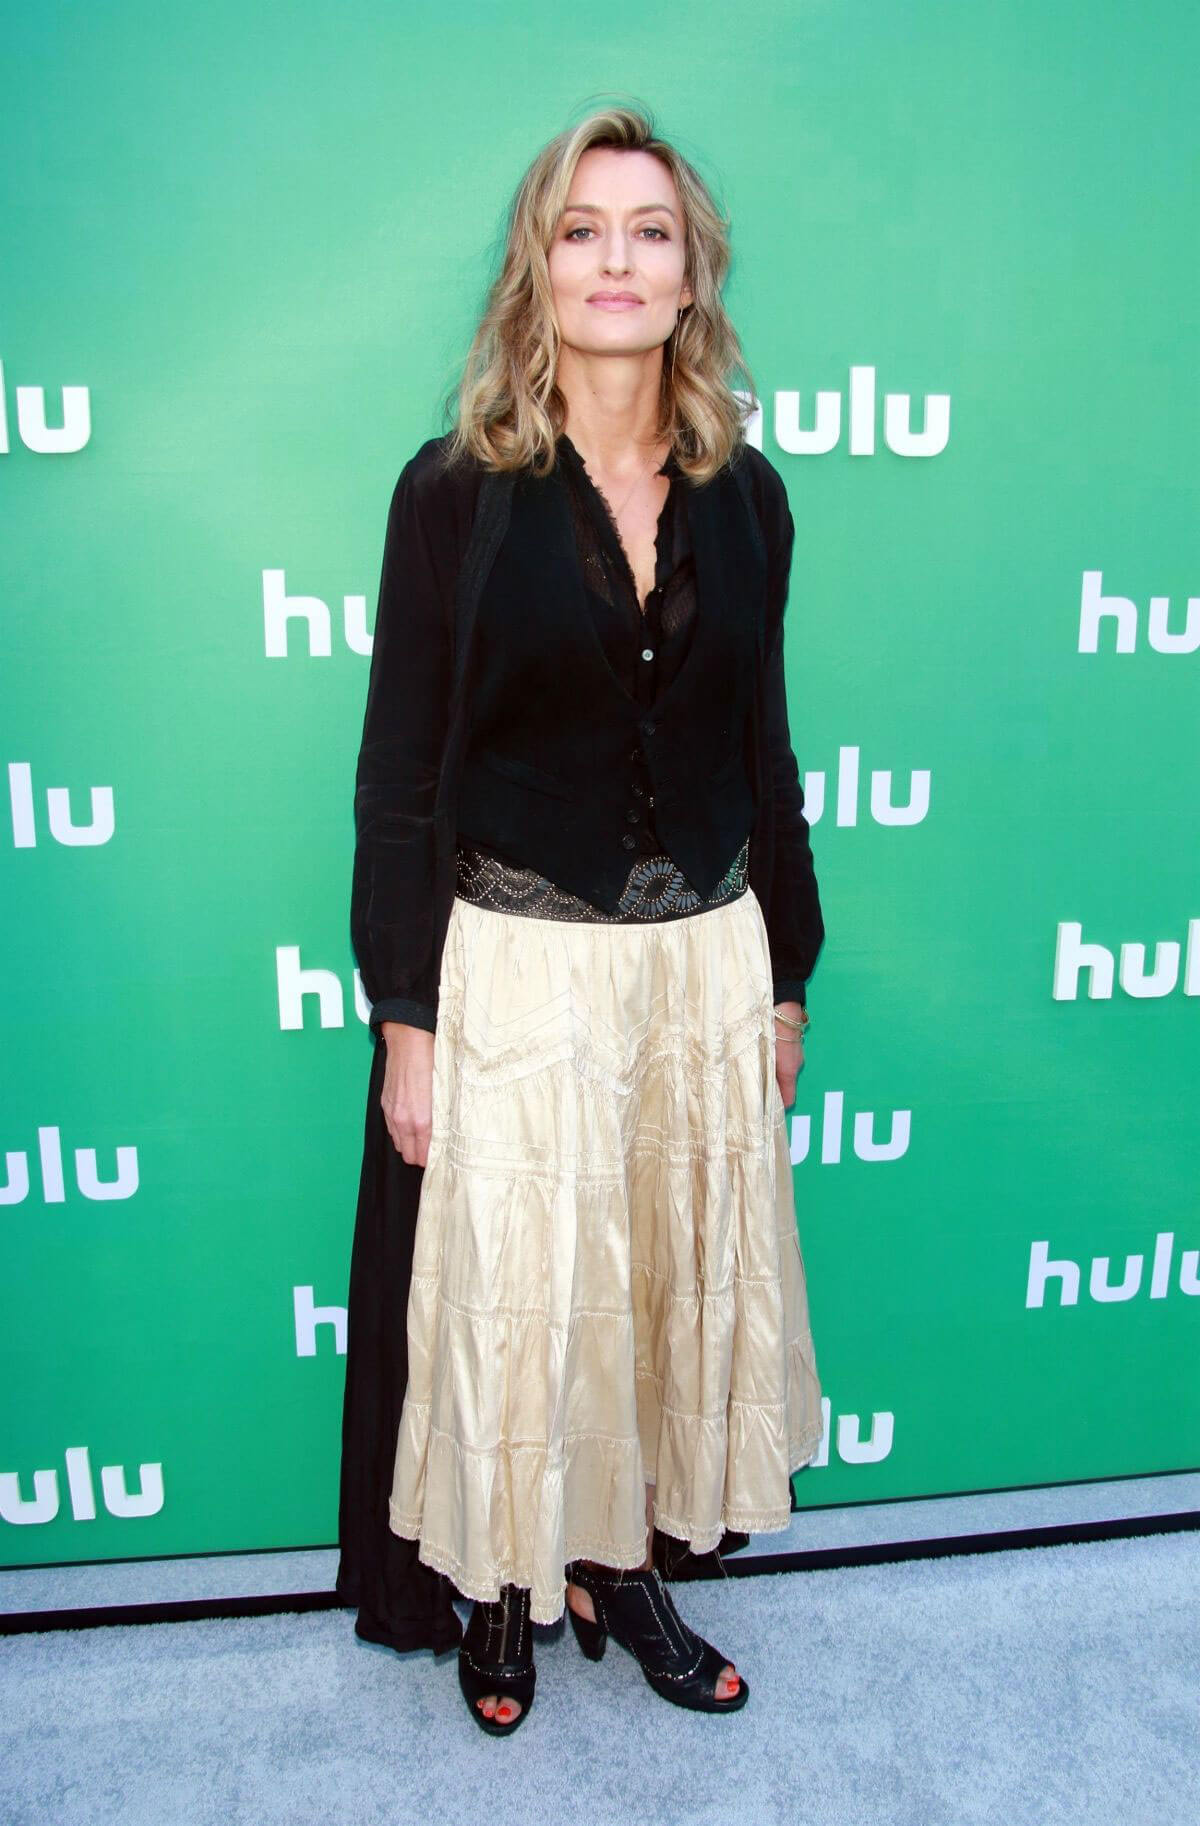 Natascha McElhone Stills at Hulu Upfront Presentation in New York 2018/05/02 12